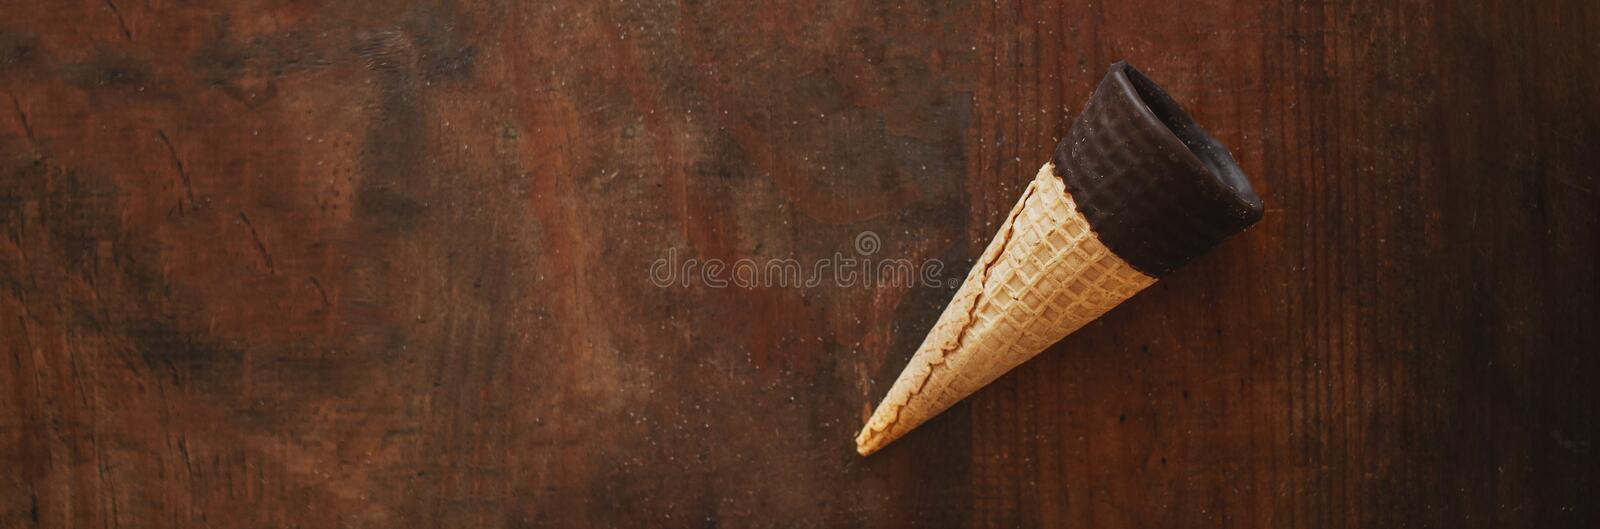 Ice cream cones. Sweet Ice-cream cones with chocolate on wooden background, flat lay. Summer concept. Top view royalty free stock photography